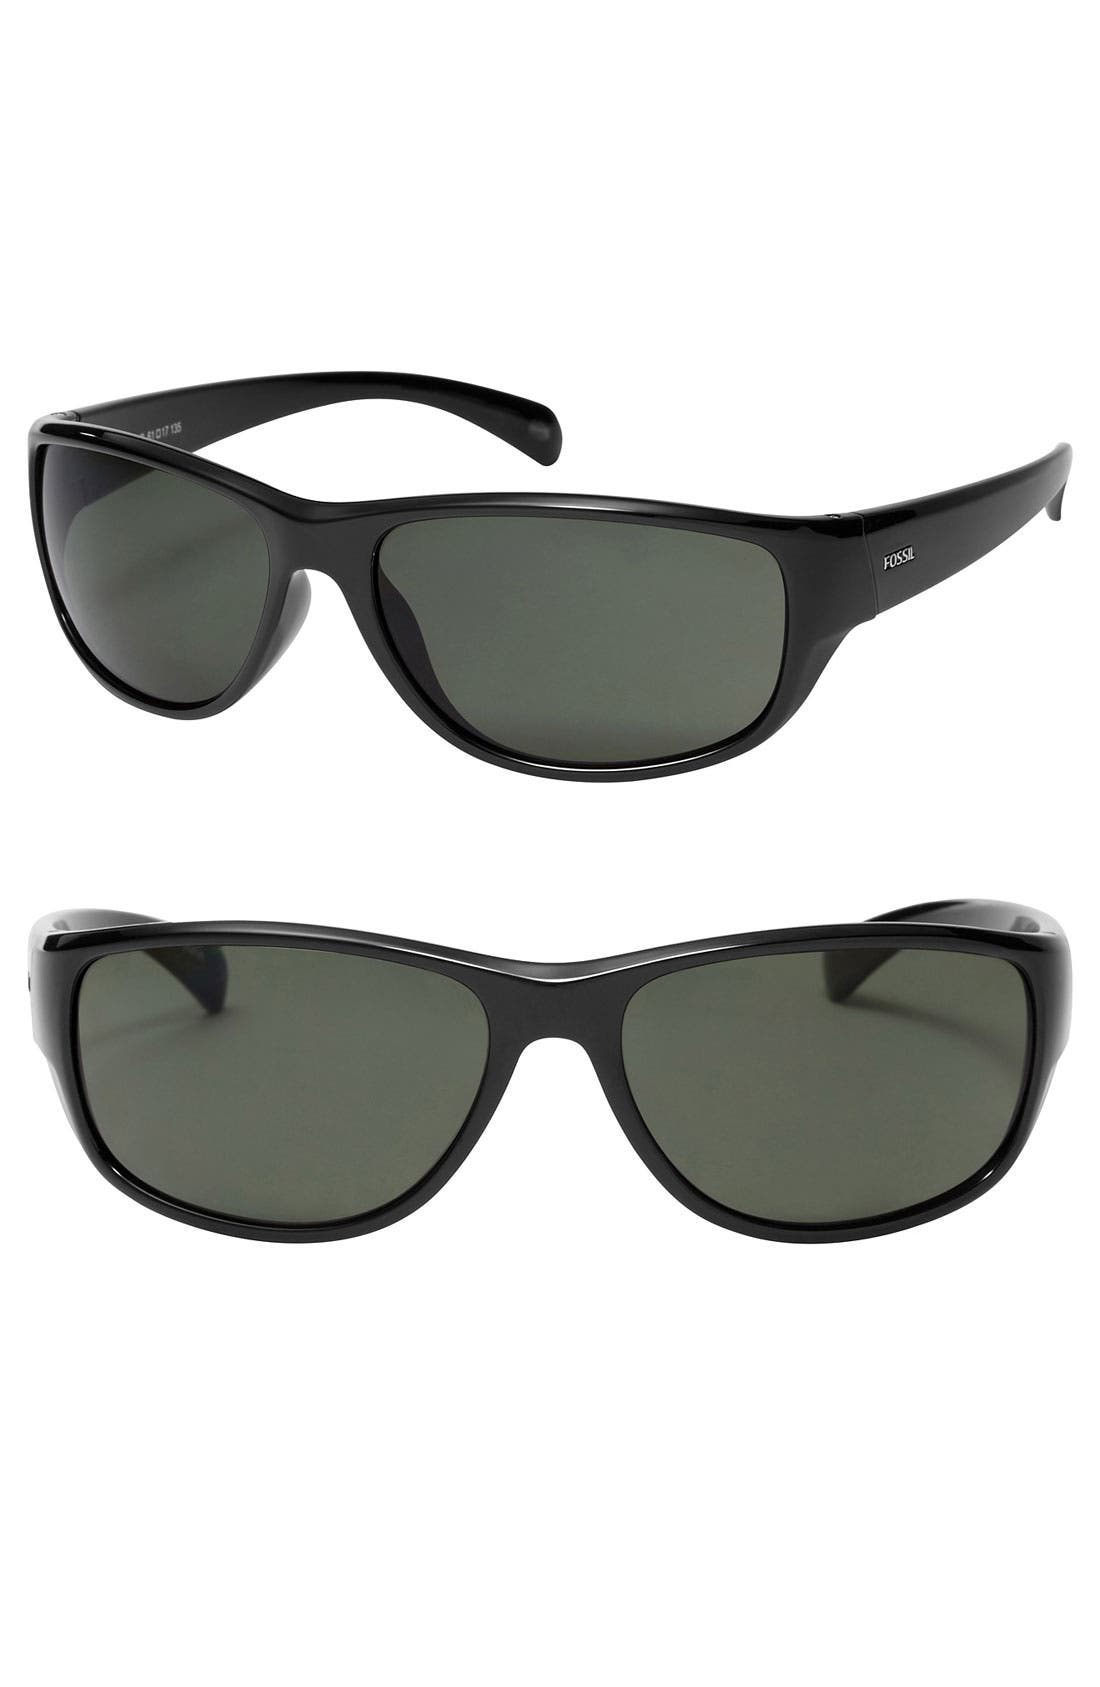 Main Image - Fossil 'Blake' 61mm Sunglasses